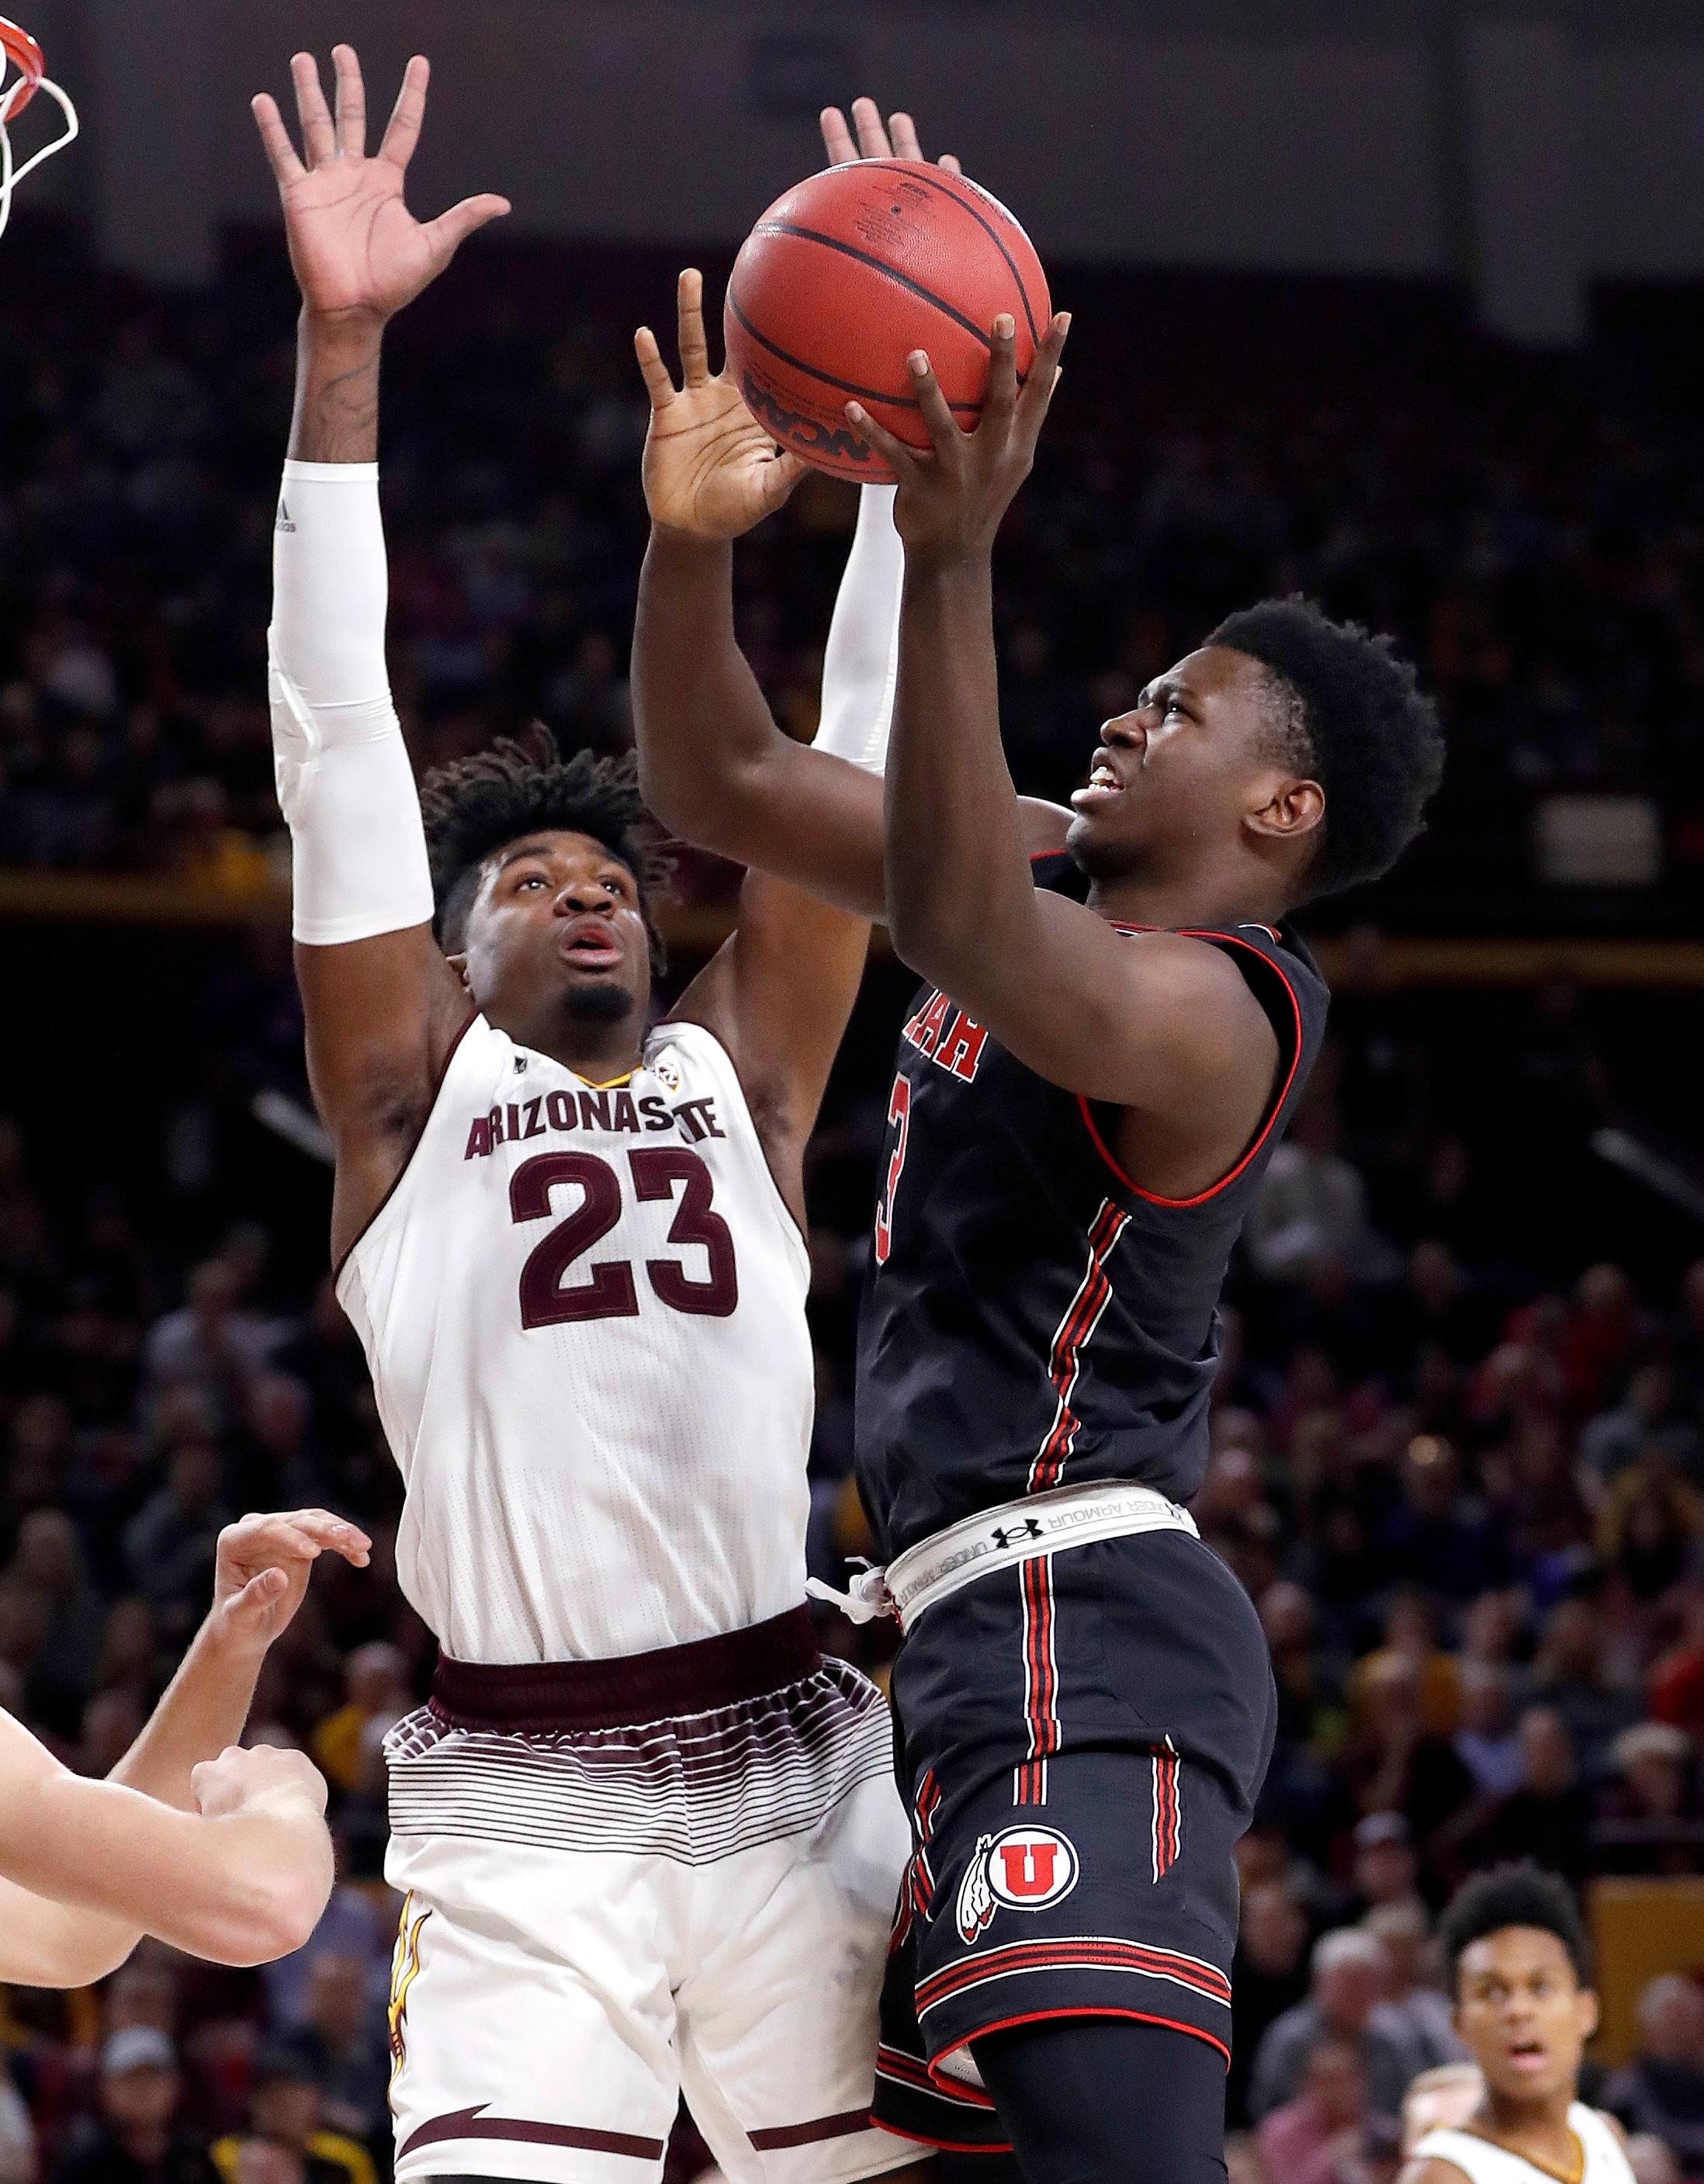 Utah forward Donnie Tillman (3) shoots over Arizona State forward Romello White (23) during the first half of an NCAA college basketball game, Thursday, Jan. 25, 2018,in Tempe, Ariz. (AP Photo/Matt York)